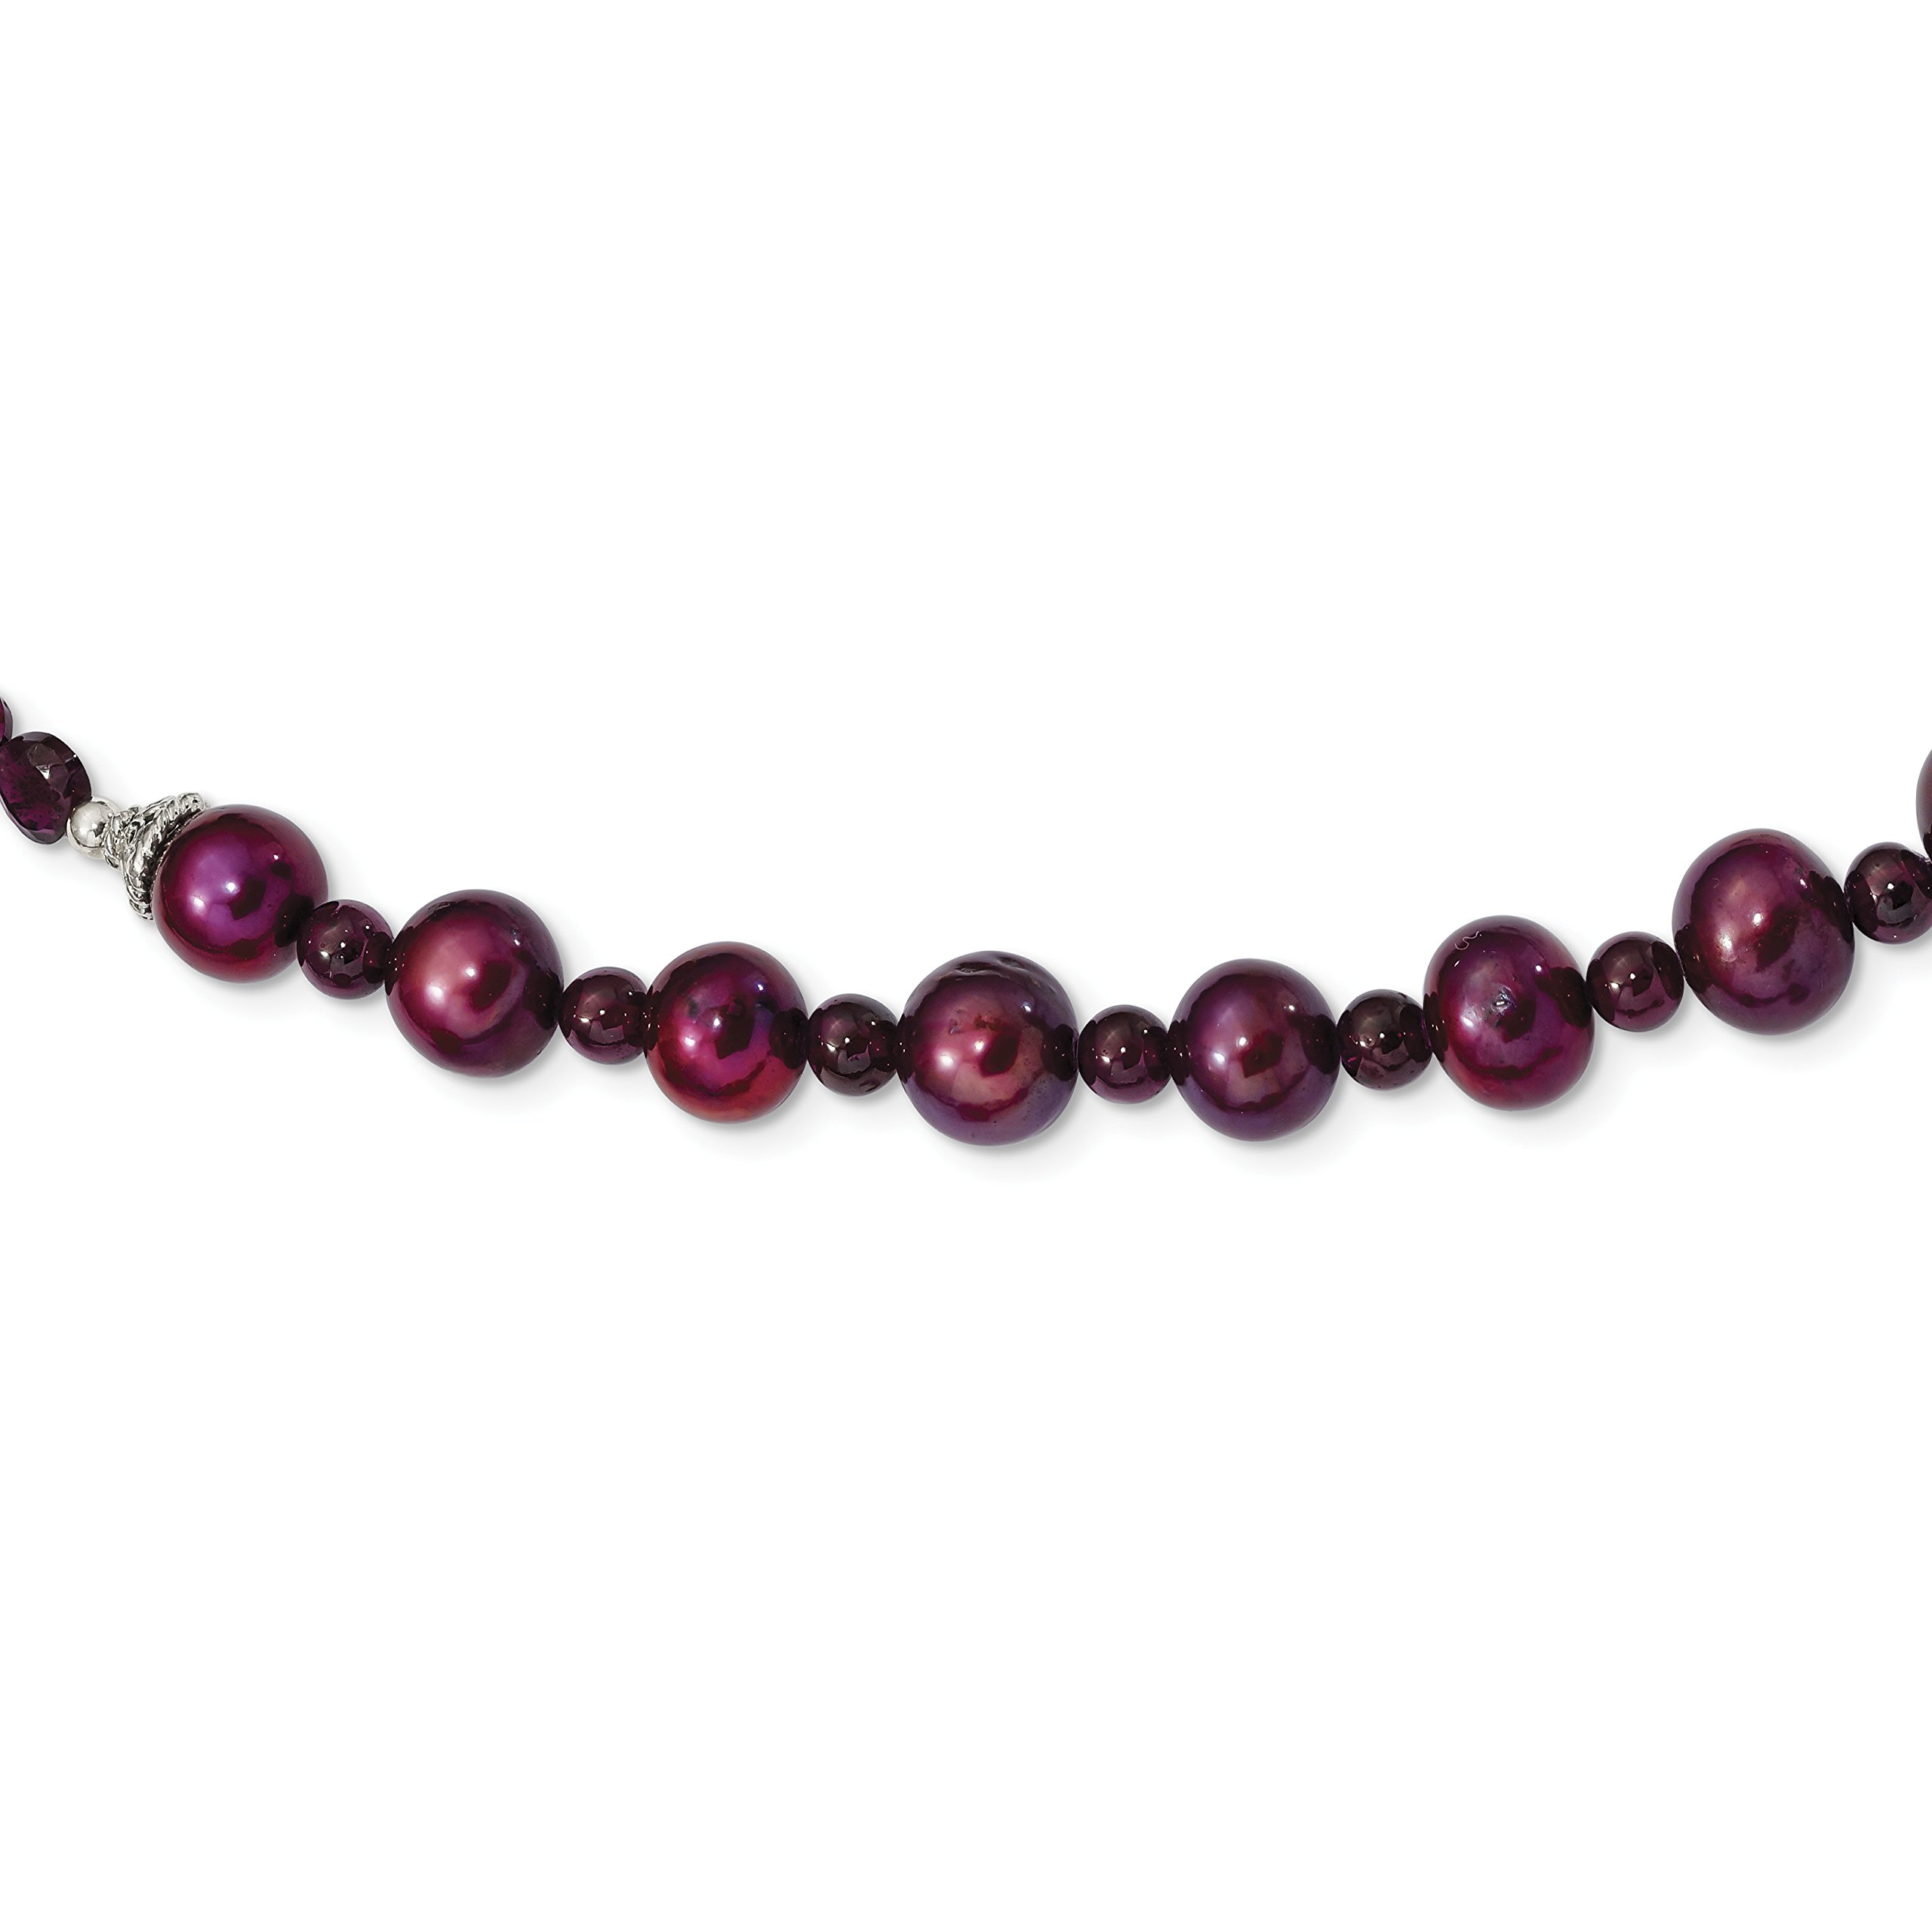 ICE CARATS 925 Sterling Silver Red Garnet 7mm Cranberry Freshwater Cultured Pearl Chain Necklace Gemstone Fine Jewelry Gift Set For Women Heart